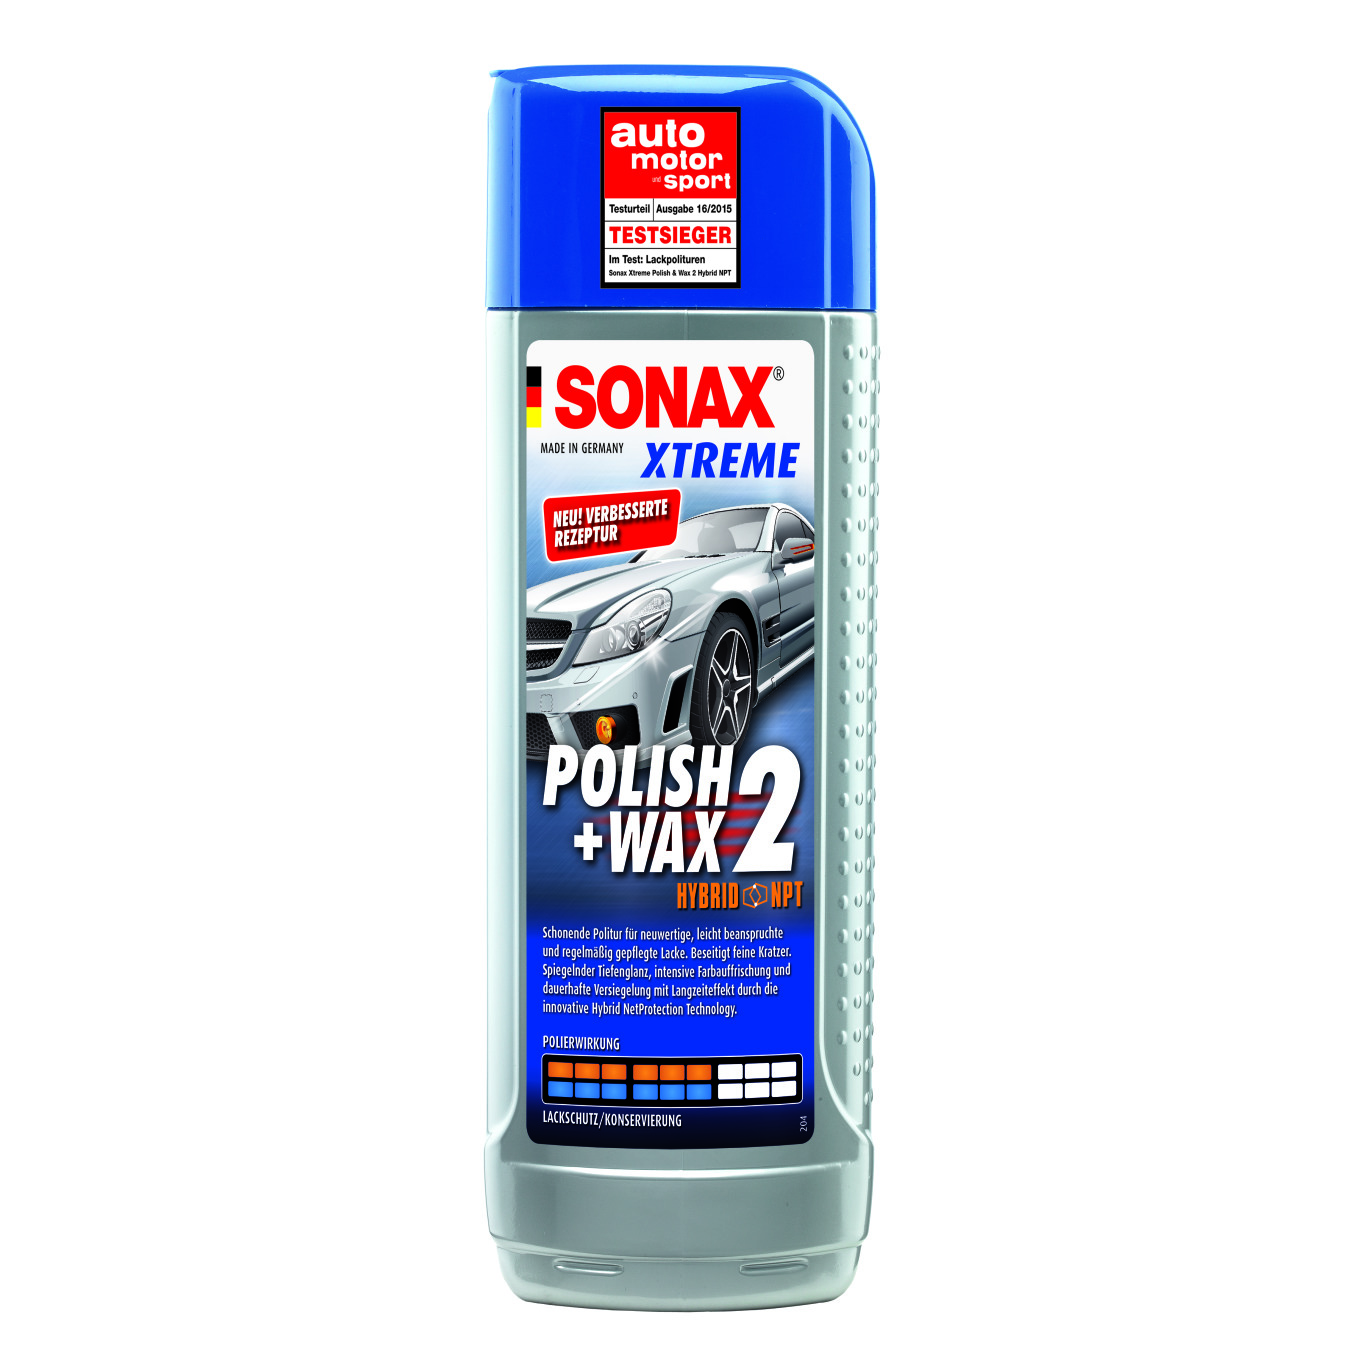 sonax xtreme polish wax 2 500 ml preisvergleich. Black Bedroom Furniture Sets. Home Design Ideas